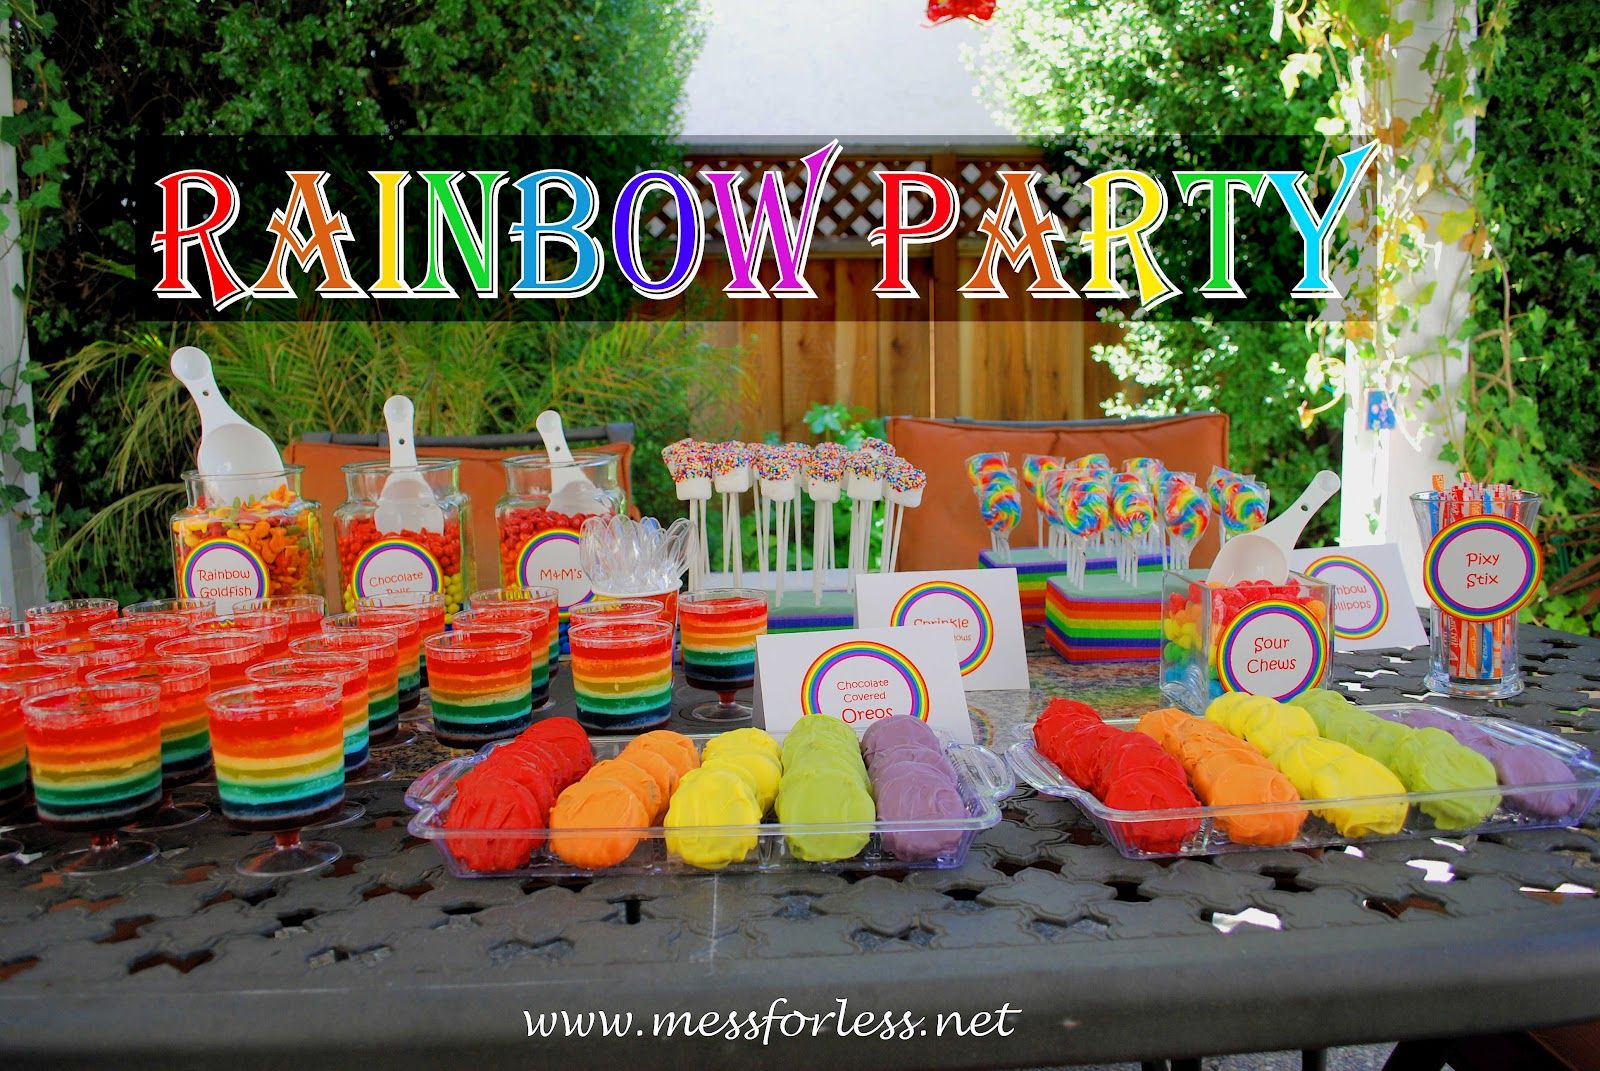 4 year old birthday party ideas girls | rainbow party ideas, rainbow